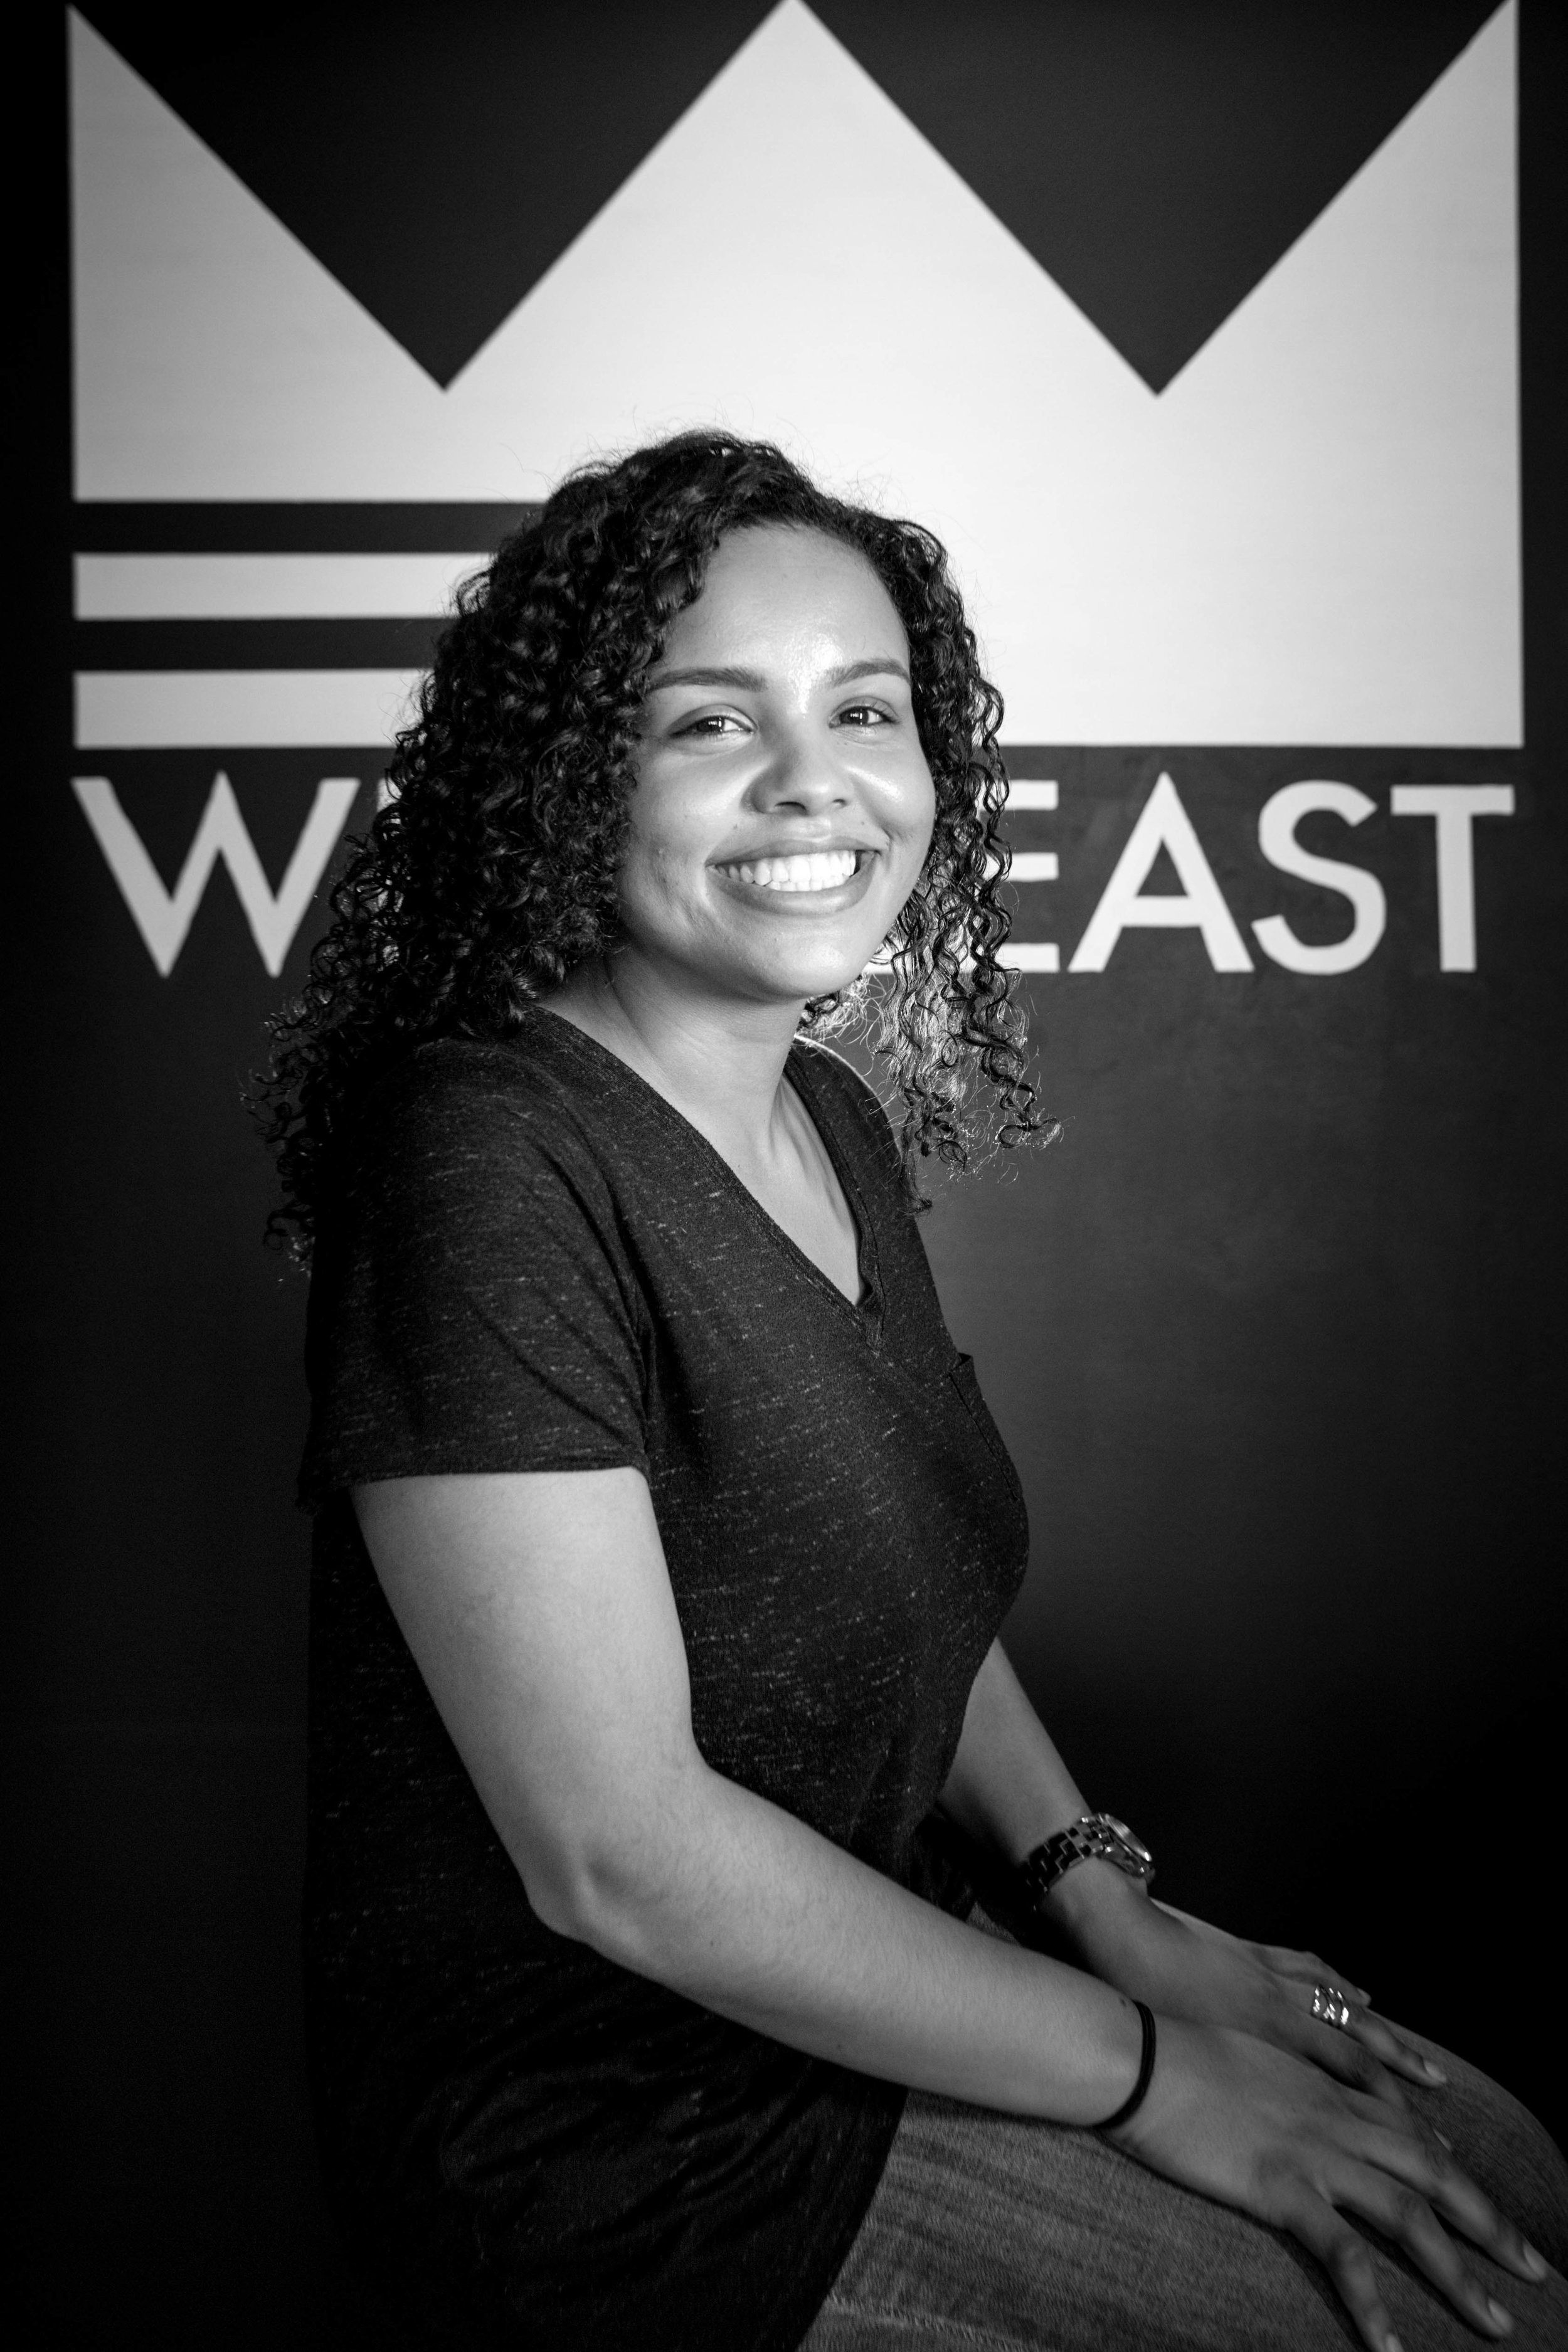 Personal assistant to the CEO. Born and raised in Seattle, WA she developed a passion for working with people and helping others at a young age.  Before being part of the West2East Empire team, Tenasha was a flight attendant who loved to make a difference for the travelers she encountered.  She enjoys spending time with her family and friends, and trying new things. And there's no where she goes where she doesn't have a smile on her face.